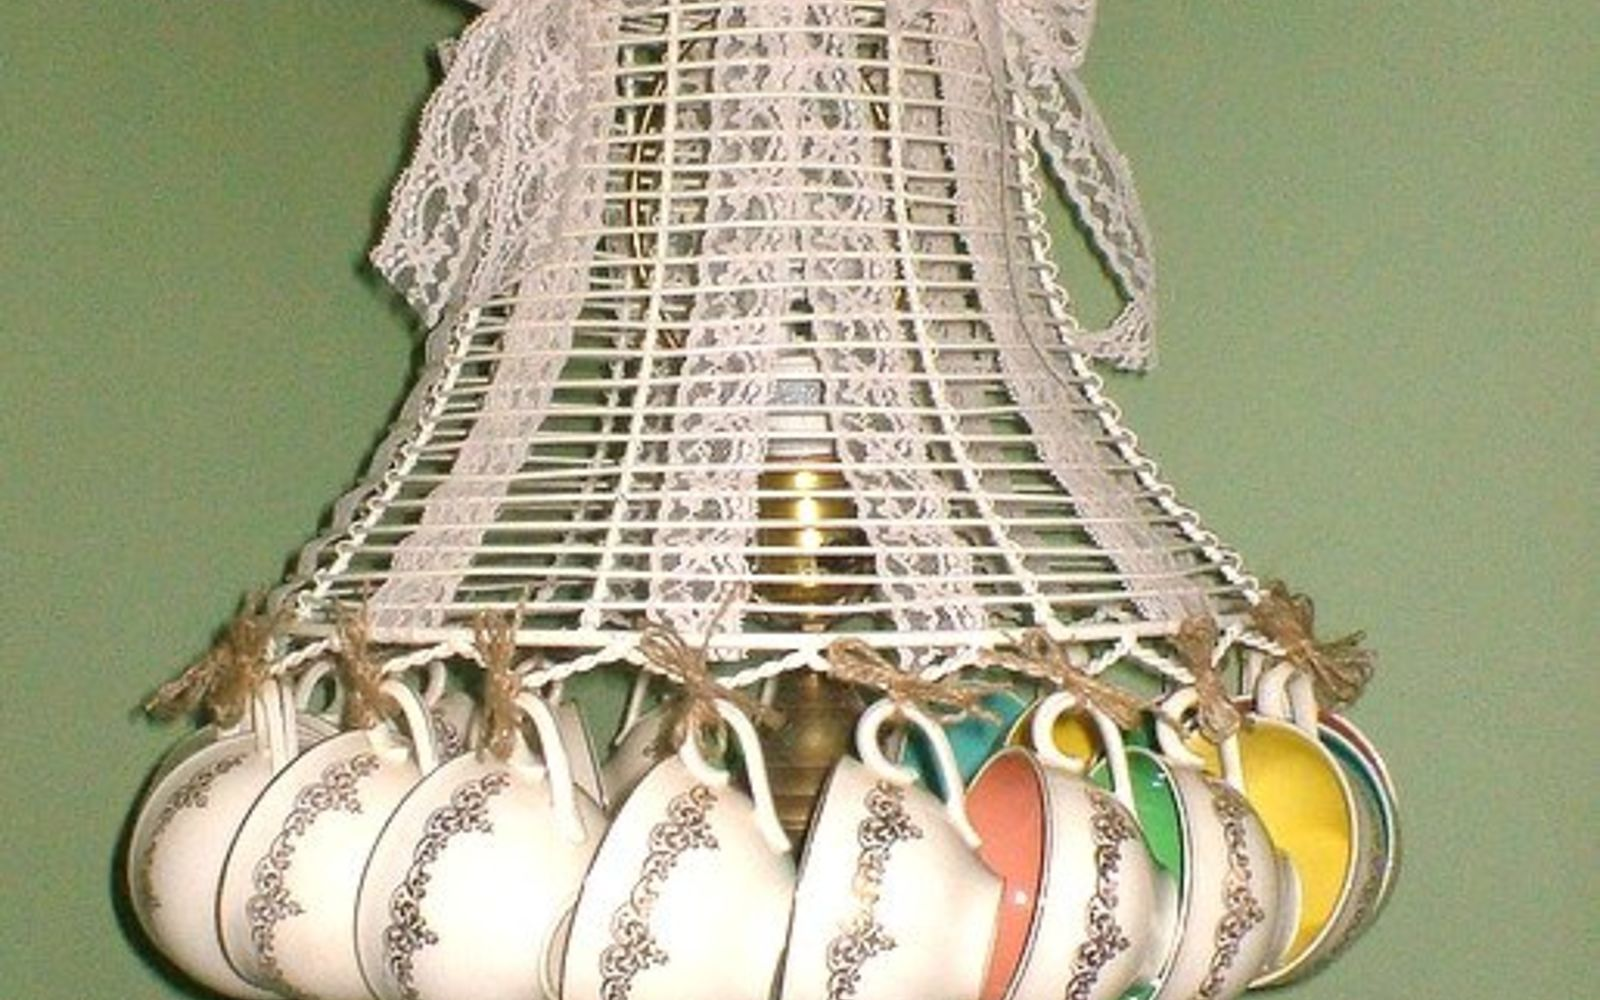 s don t ditch your broken teacups til you see what people do with them, repurposing upcycling, String chipped cups around a lamp frame